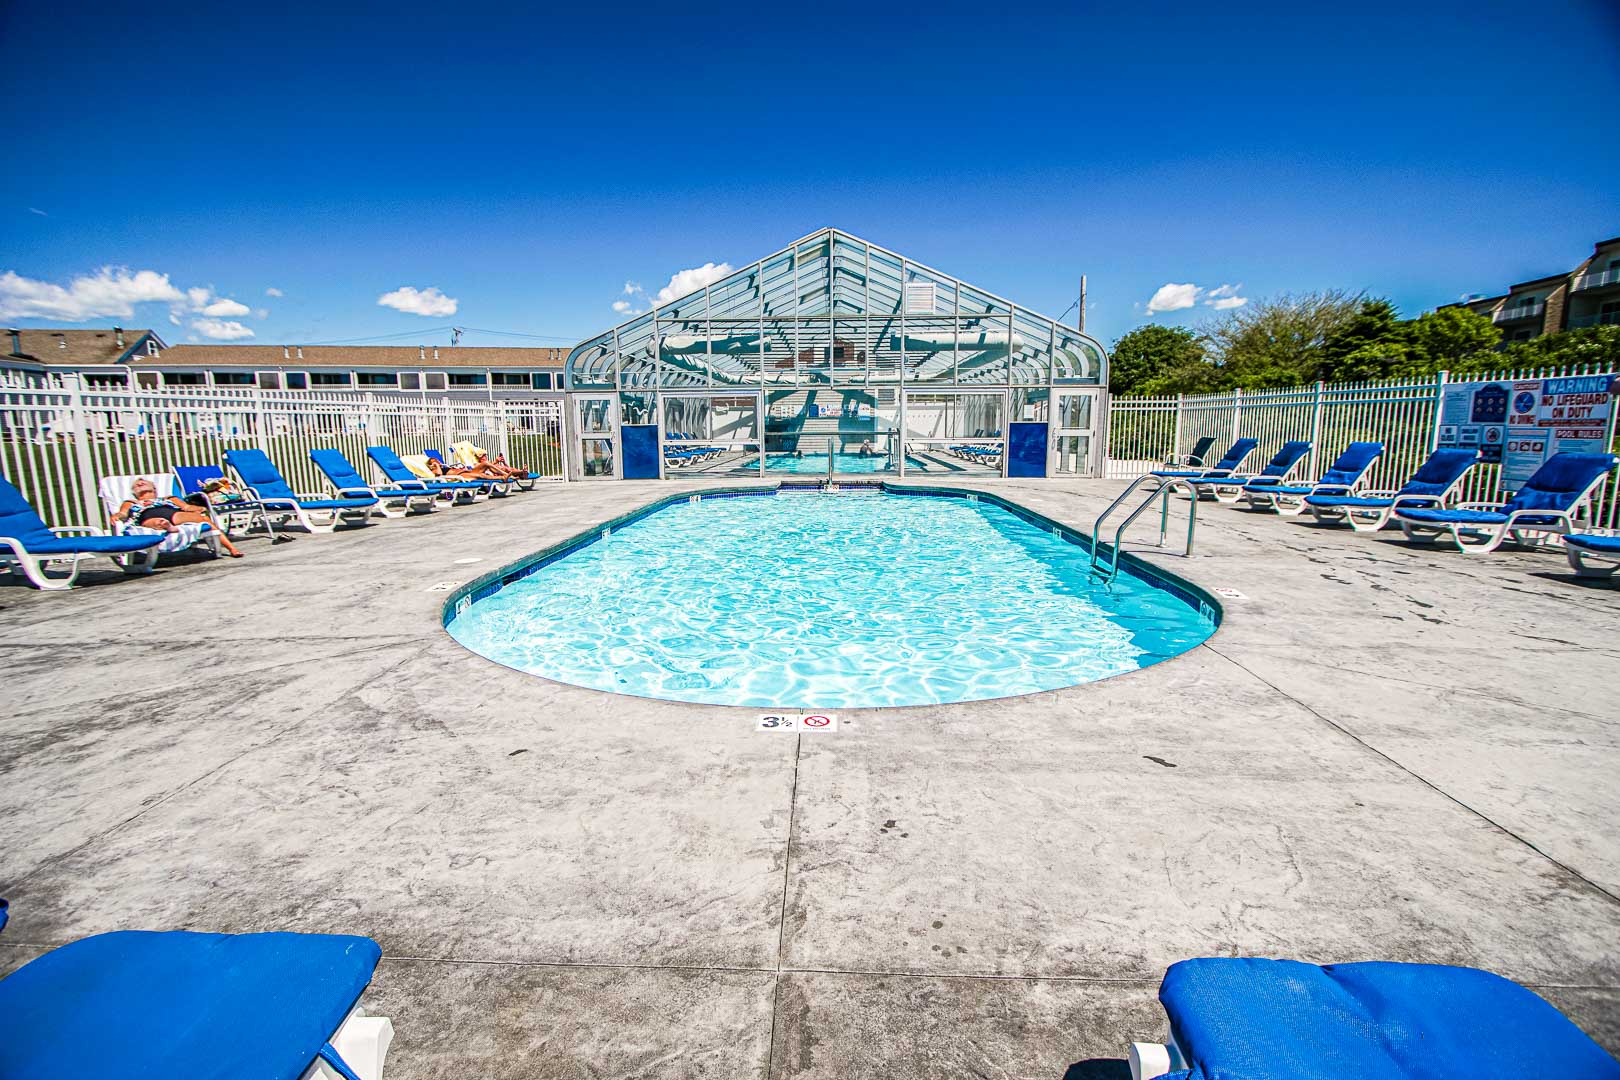 A refreshing indoor pool at VRI's Edgewater Beach Resort in Massachusetts.